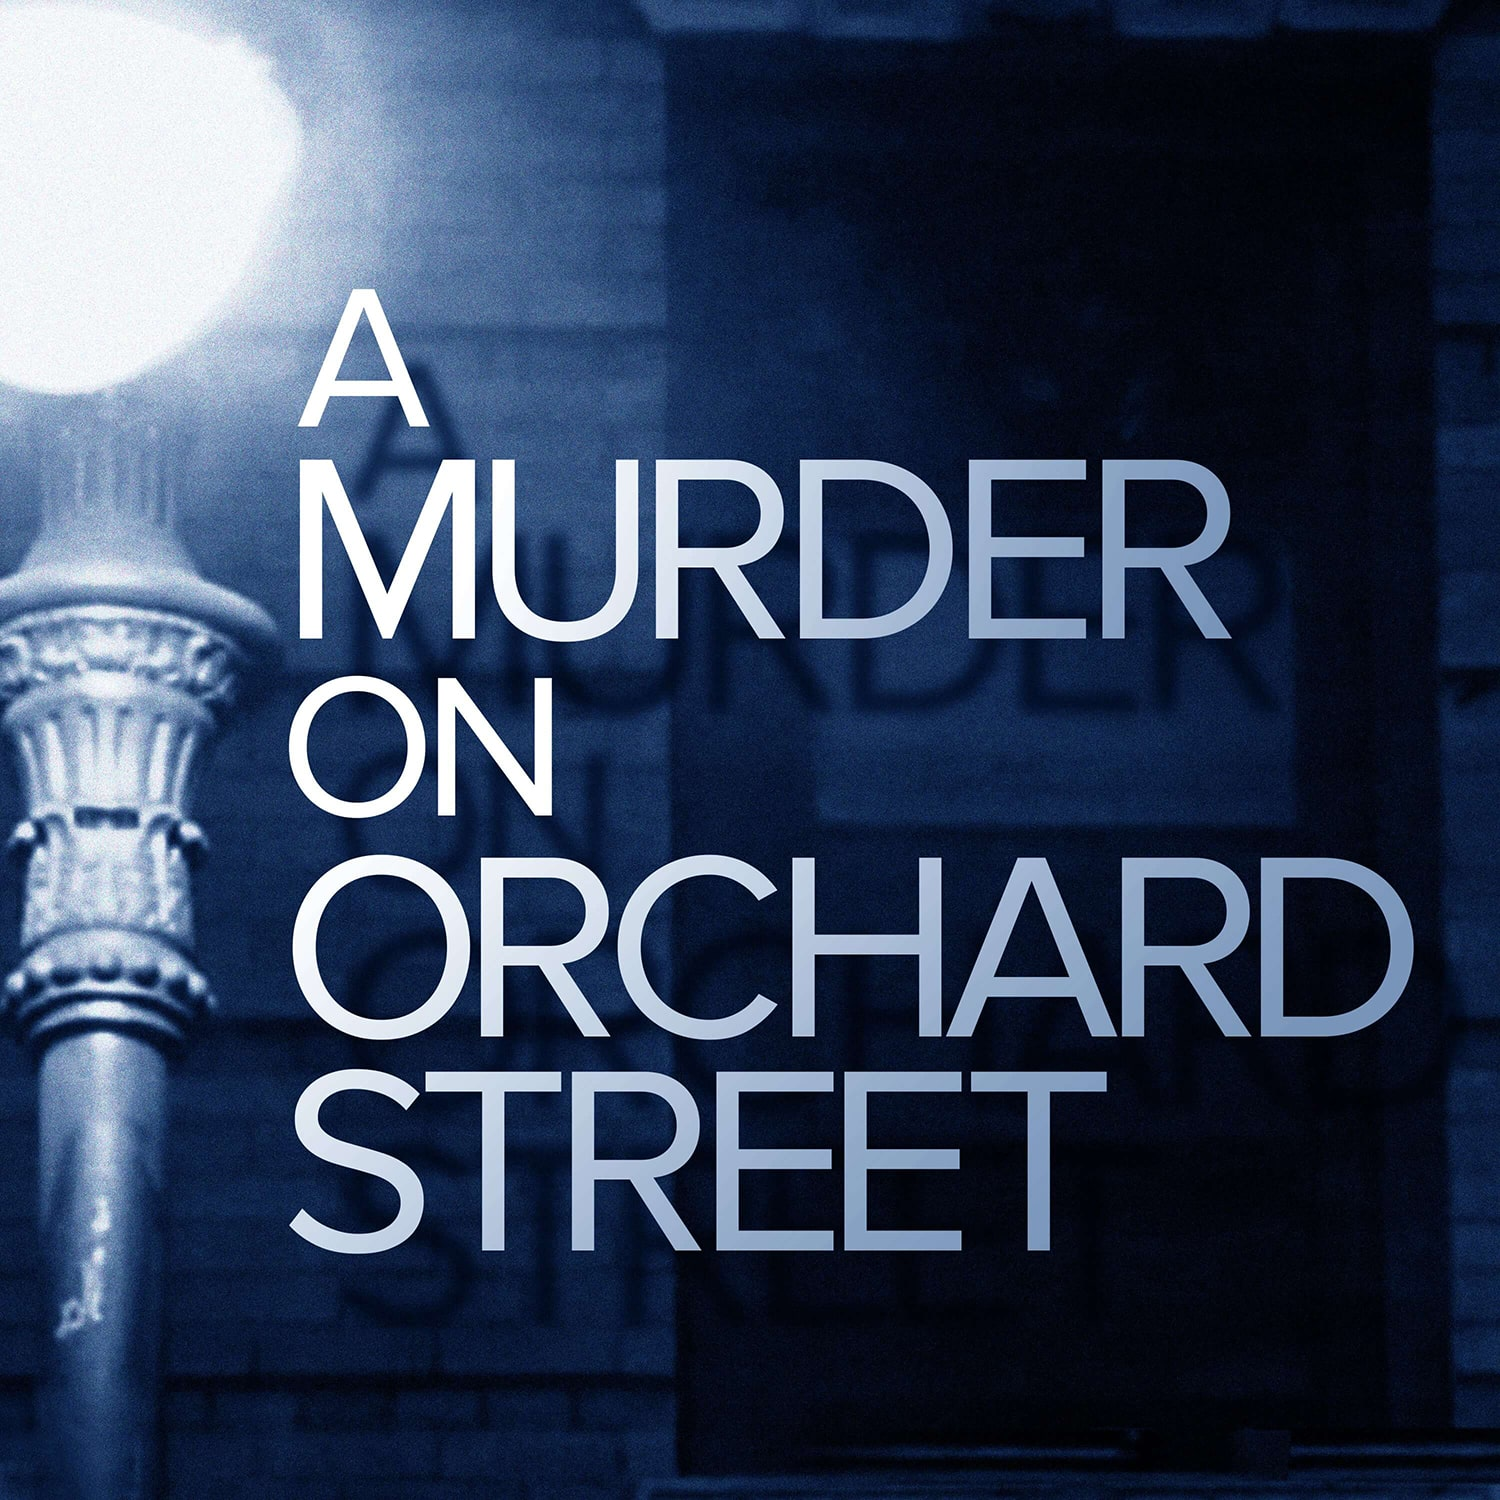 Image result for murder on orchard street